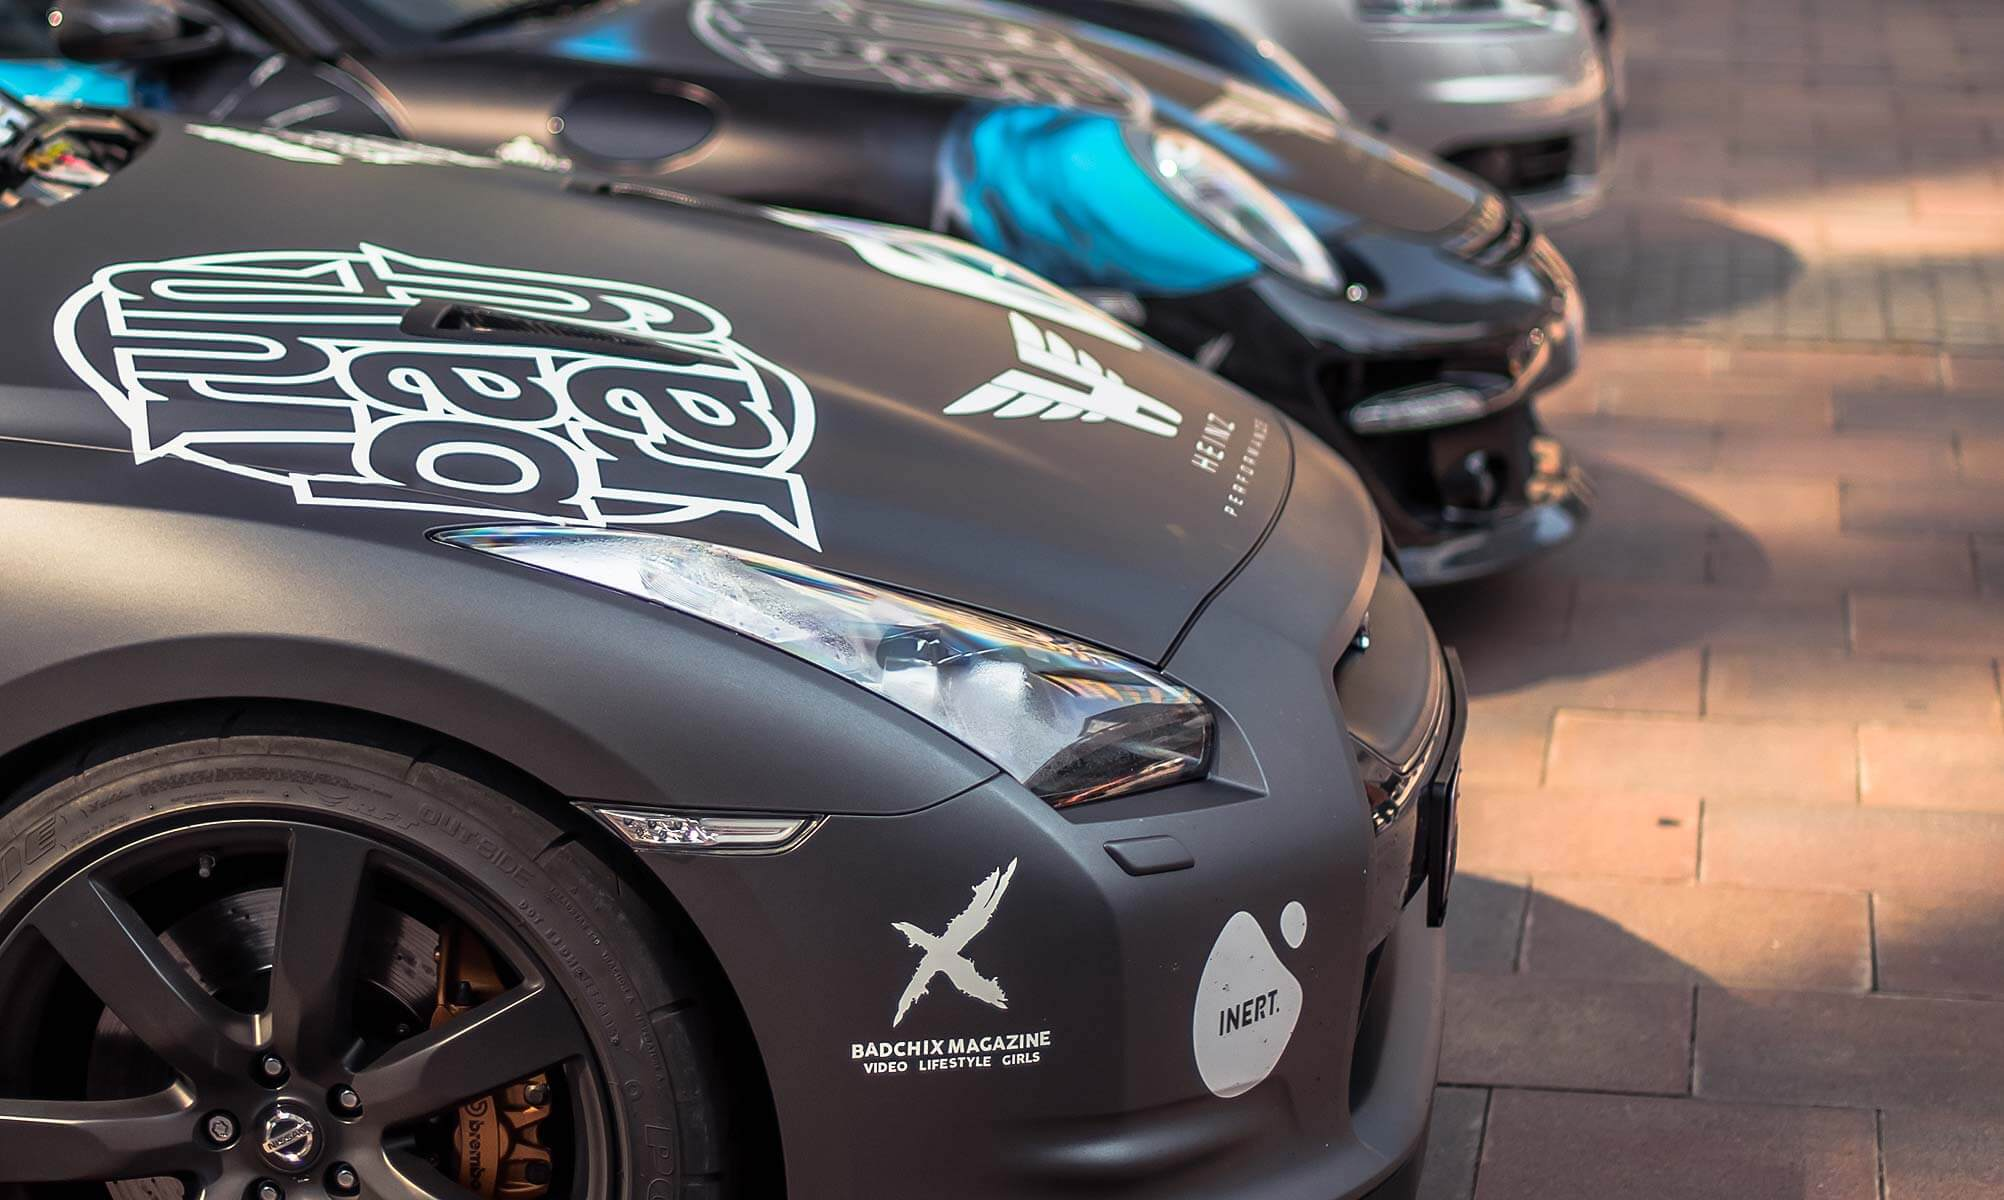 95 Supercars Driving From Saint-Tropez to Barcelona in Europe